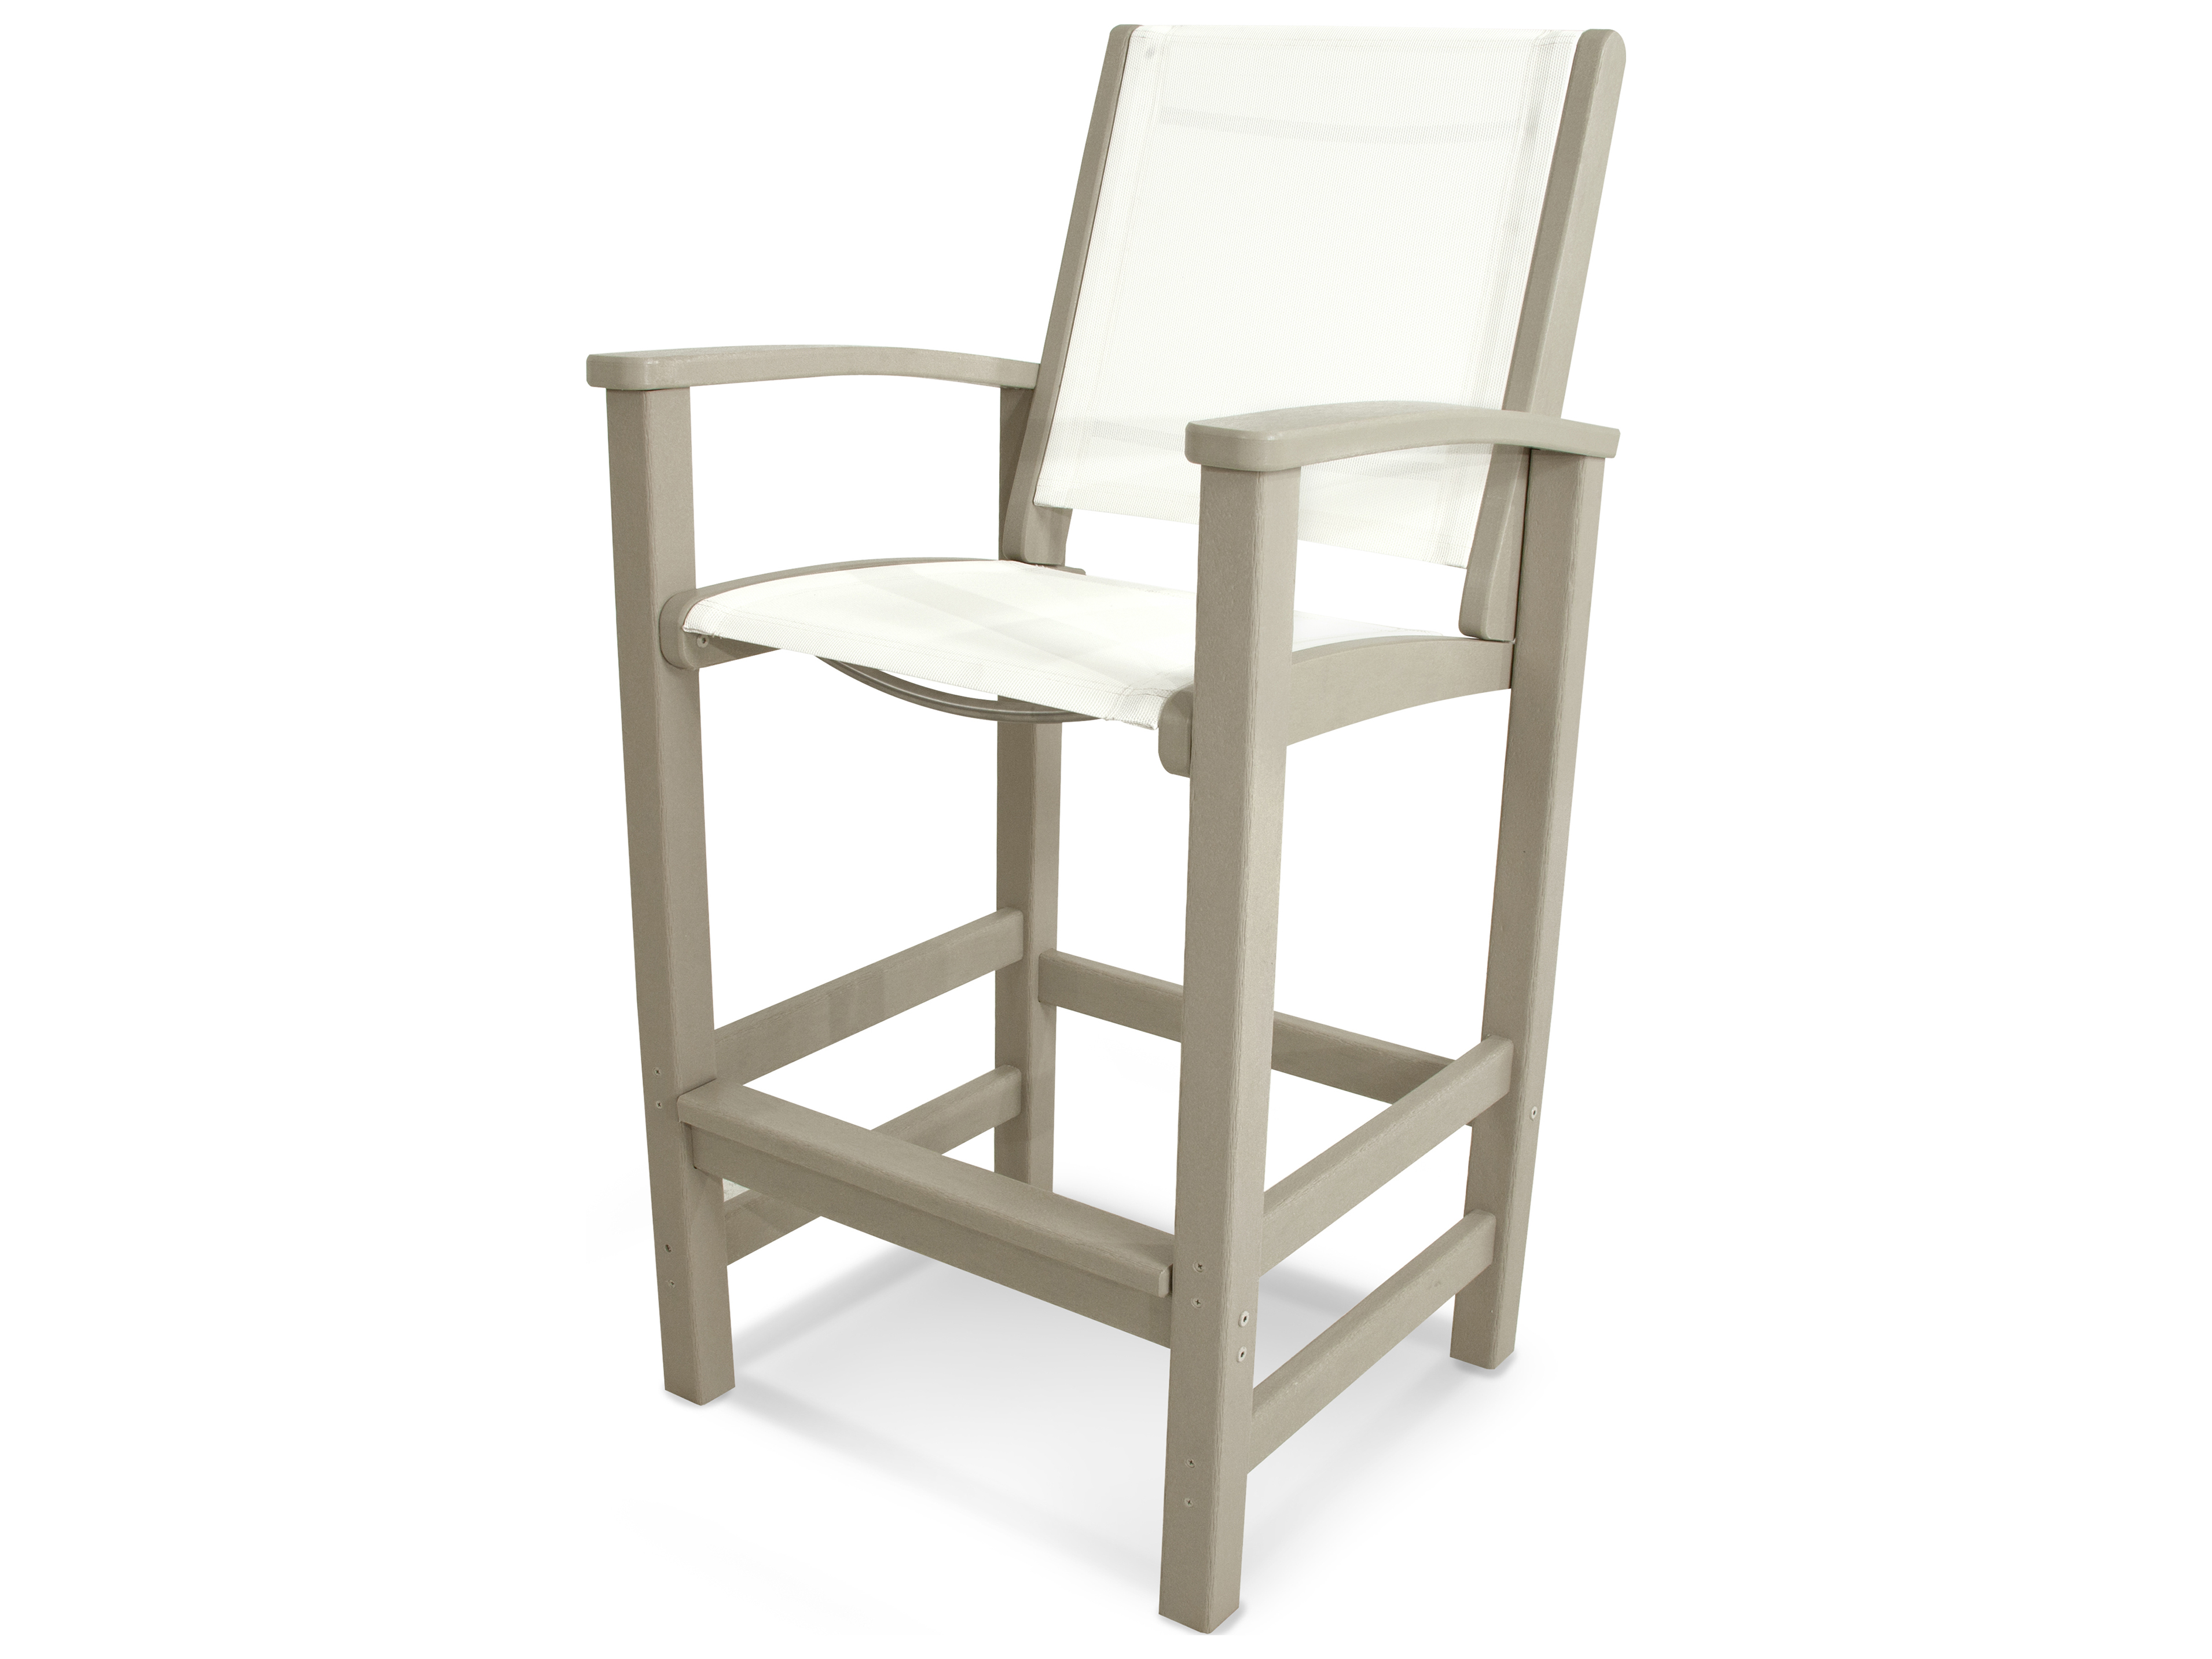 Polywood 174 Coastal Recycled Plastic Bar Chair Pw9012